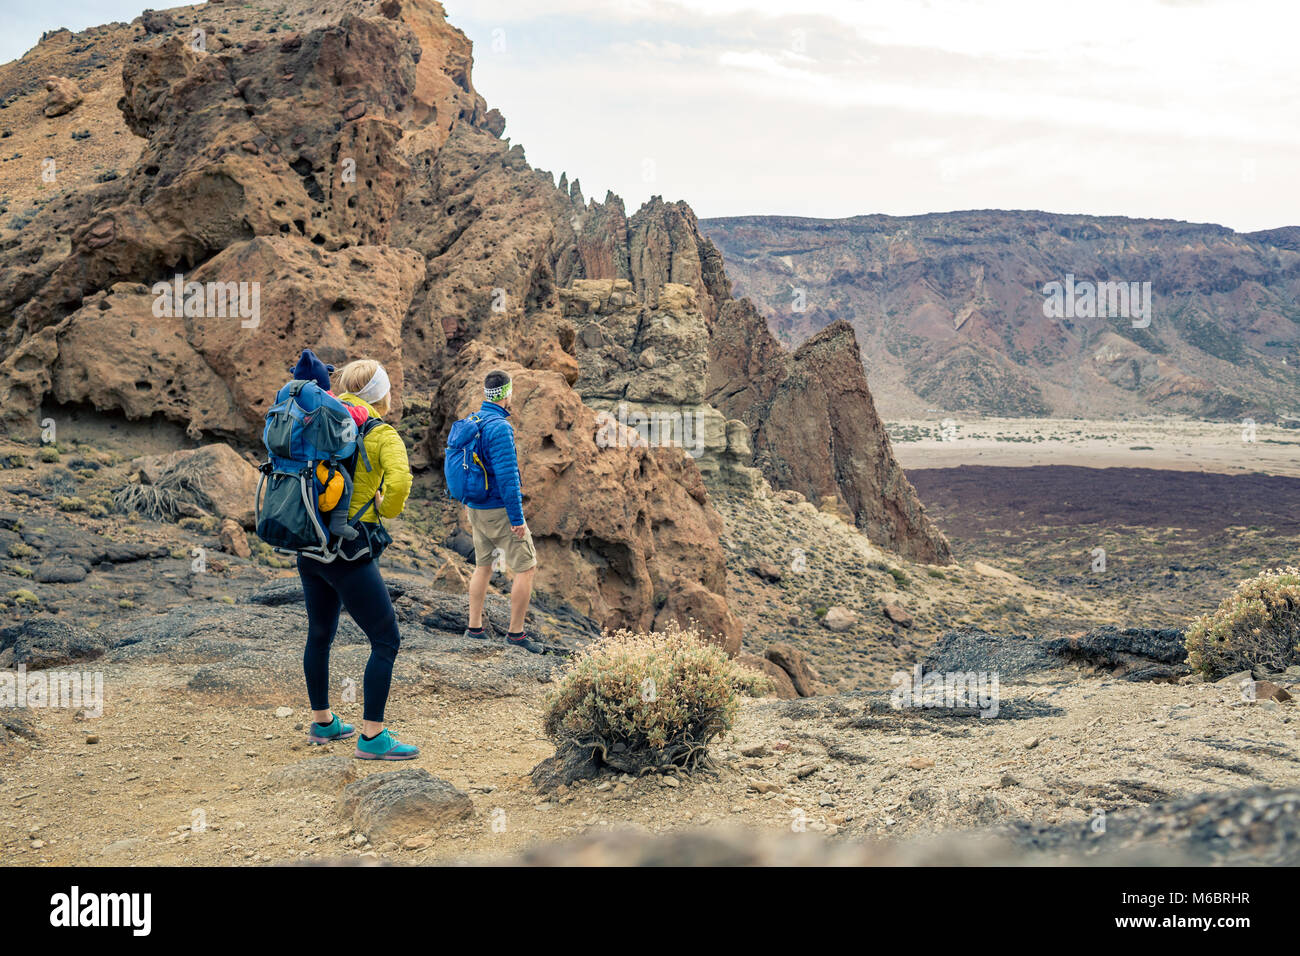 Family hiking with baby boy travelling in backpack. Hiking adventure with child on autumn family trip in mountains. - Stock Image